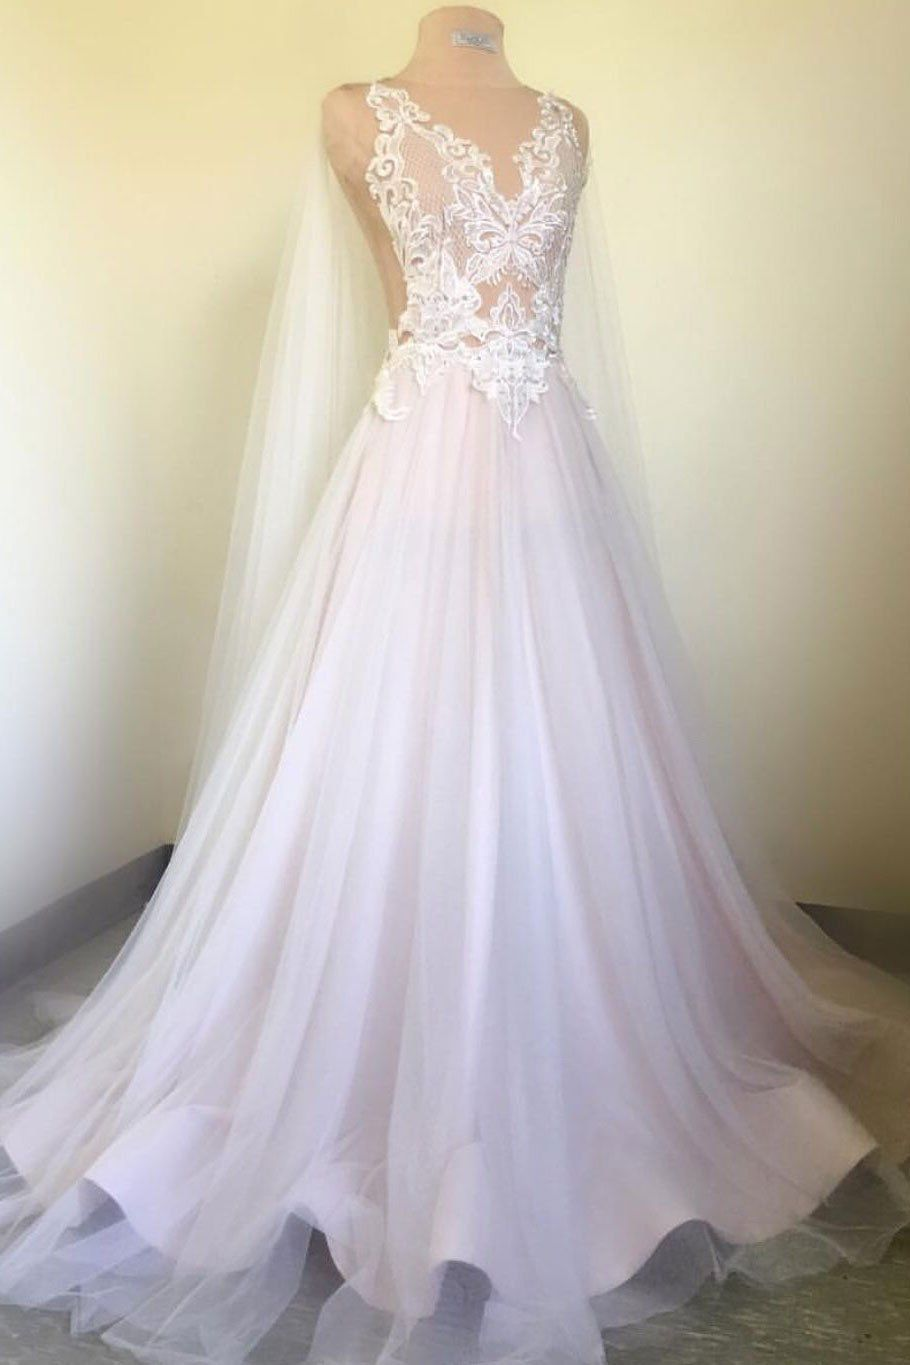 White tulle long train v neck lace senior prom dress white wedding